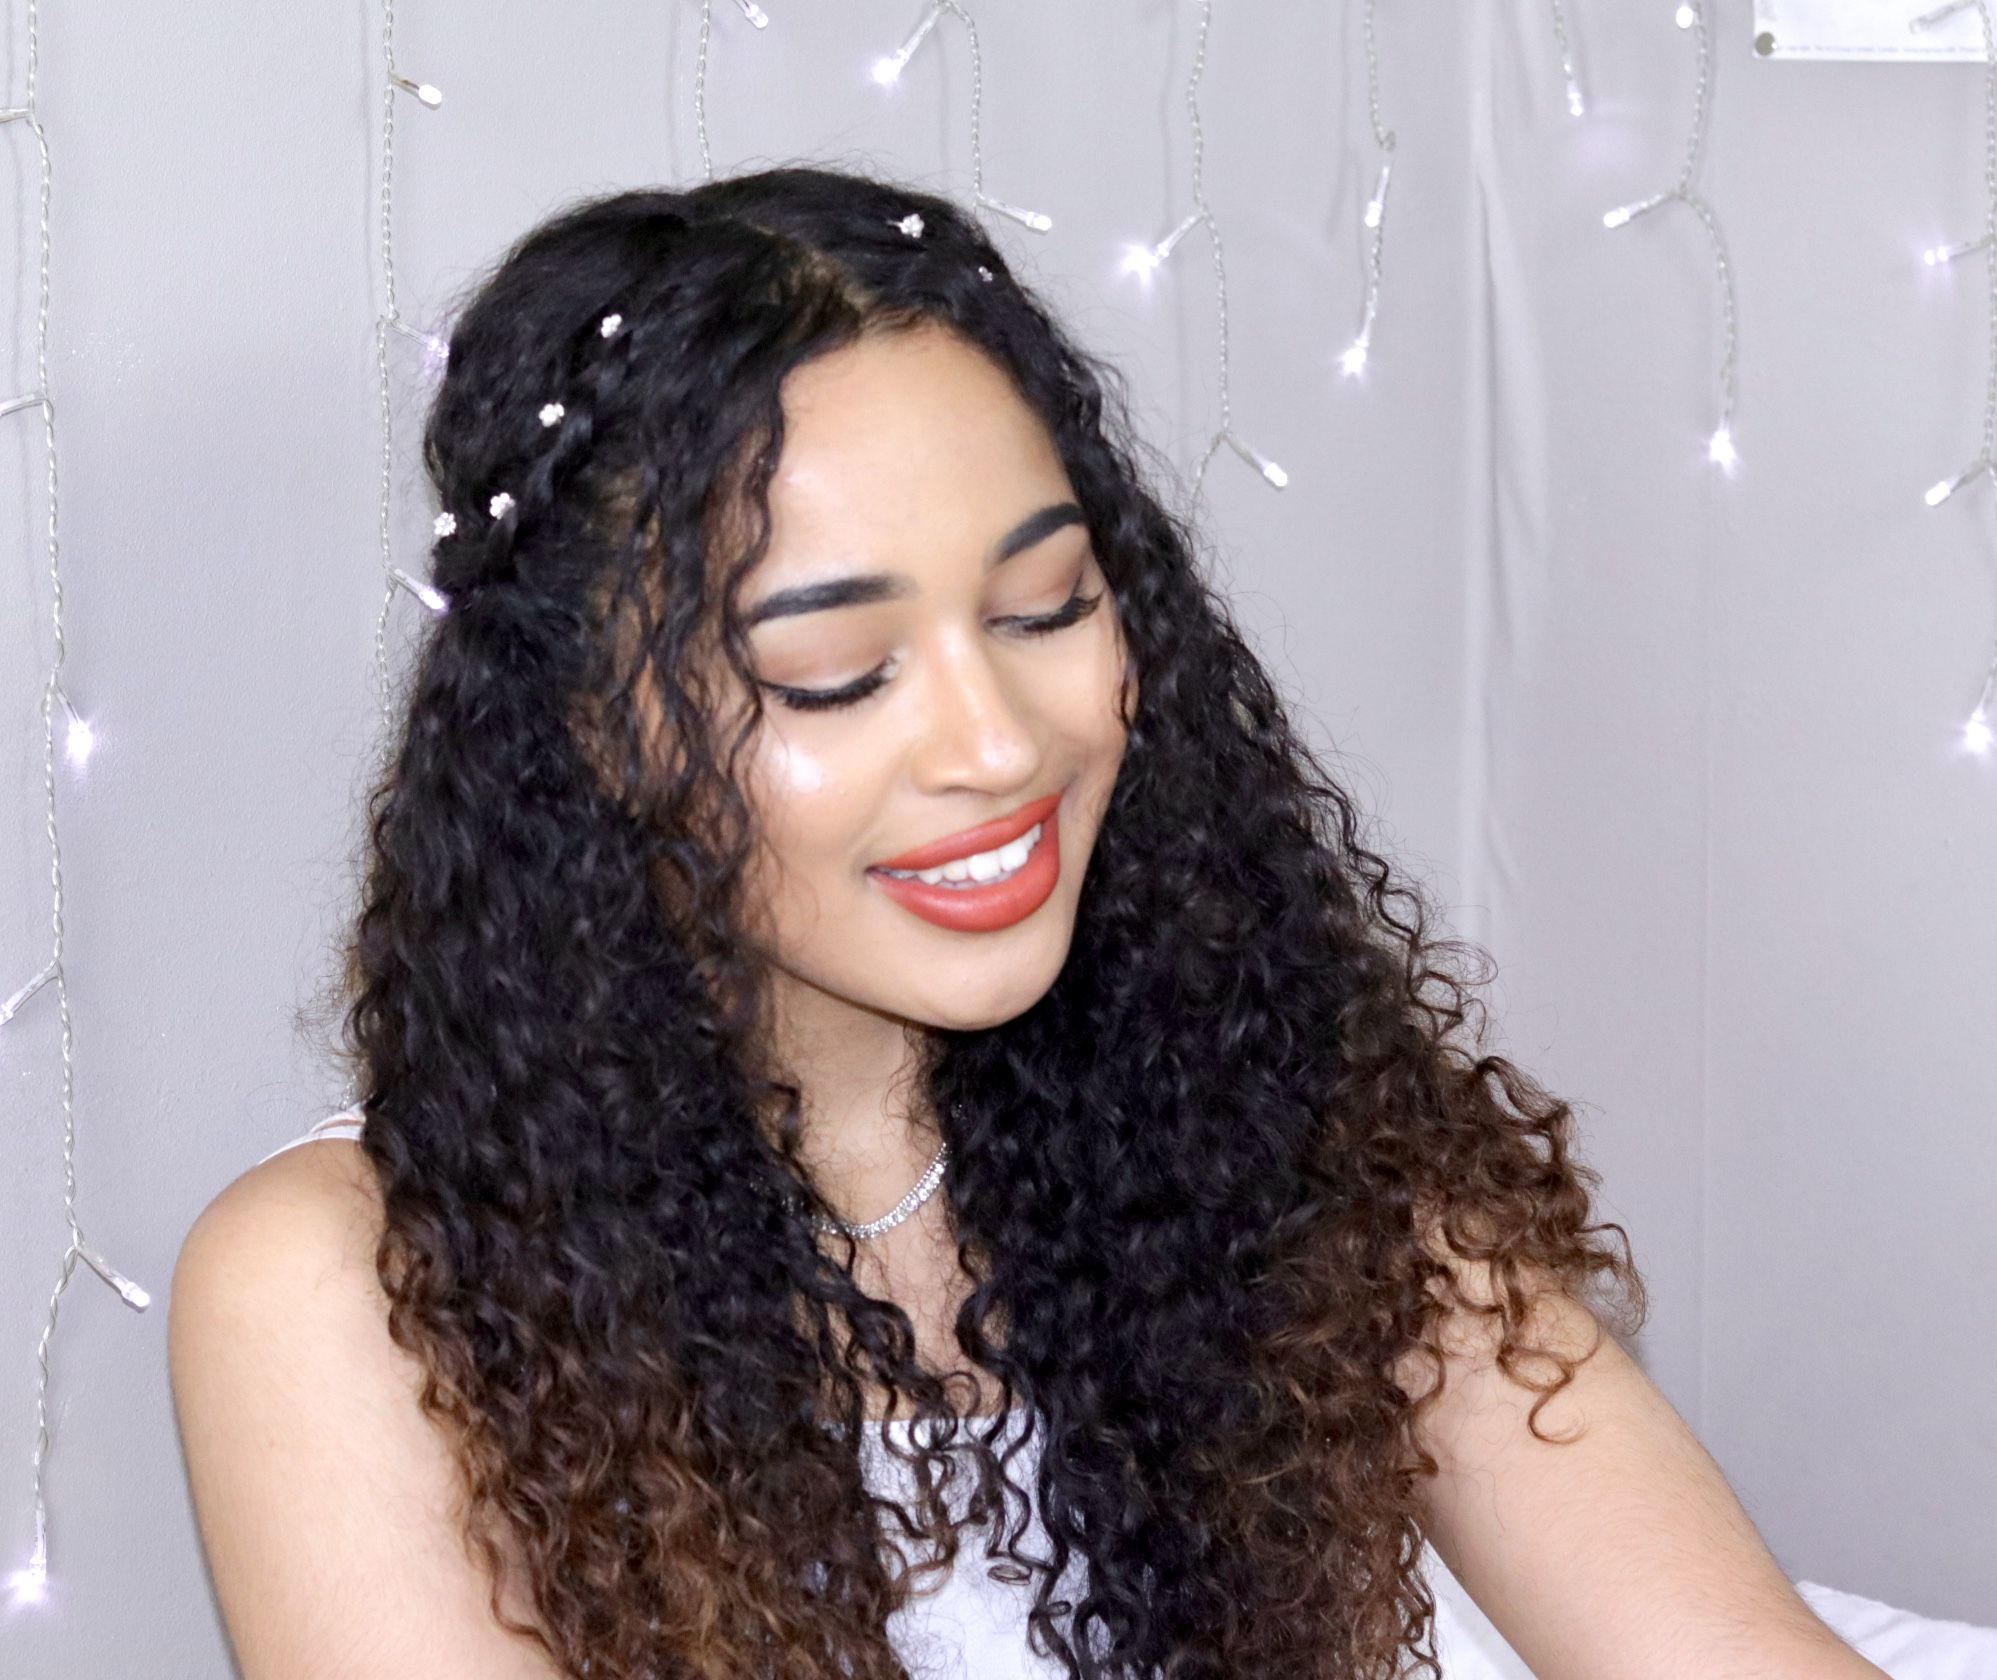 Boho Curly Hairstyles For Prom Weddings Graduation Parties Beautiful Natural Hairstyles By La Curly Prom Hair Curly Hair Styles Curly Hair Styles Naturally